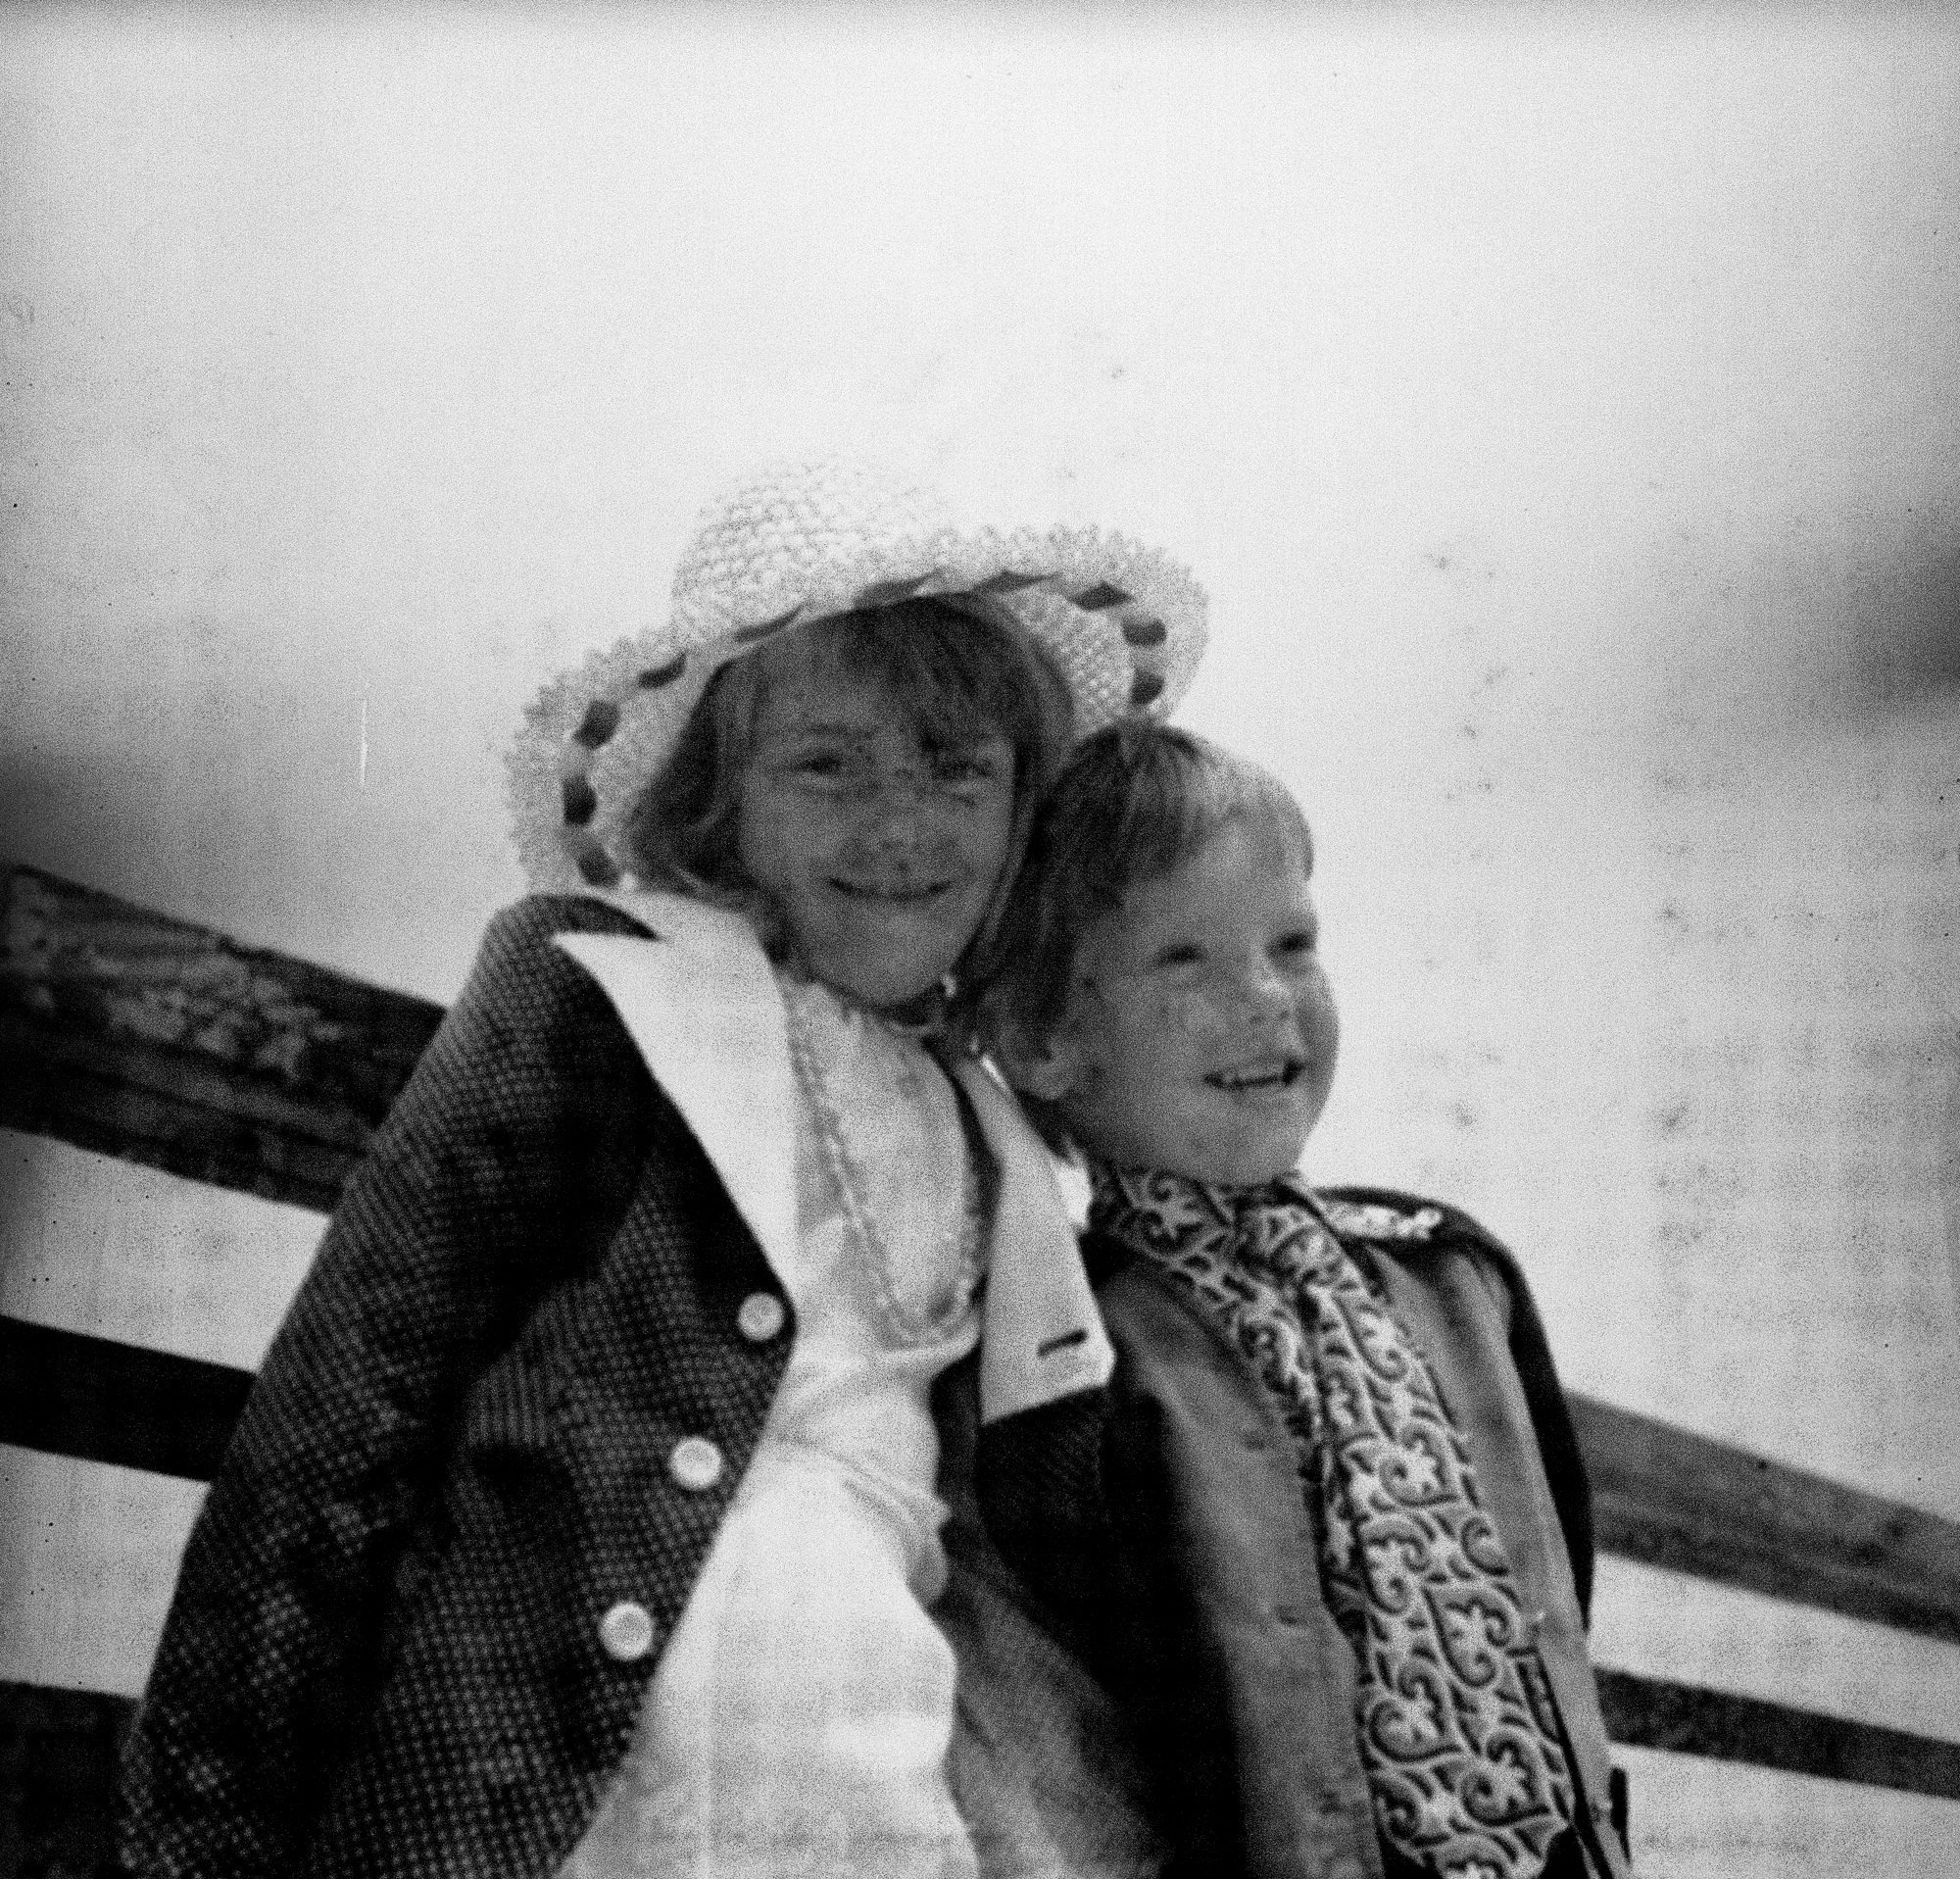 Image Description: Photograph features a young boy and a girl. The girl (left) is wearing sun hat, her hair down, with a white dress, what seems to be pearls around her neck, and a white and grey jacket. The boy (right) is wearing a black and grey jacket, a patterned scarf with trousers and white suspenders that can't be clearly seen the photograph. The girl is looking at the camera smiling, whilst the boy is looking straight ahead of him (to our right), again smiling wide.  Not much scene in this photograph, except for sky and one plank of fencing behind them, which they seem to be leaning on